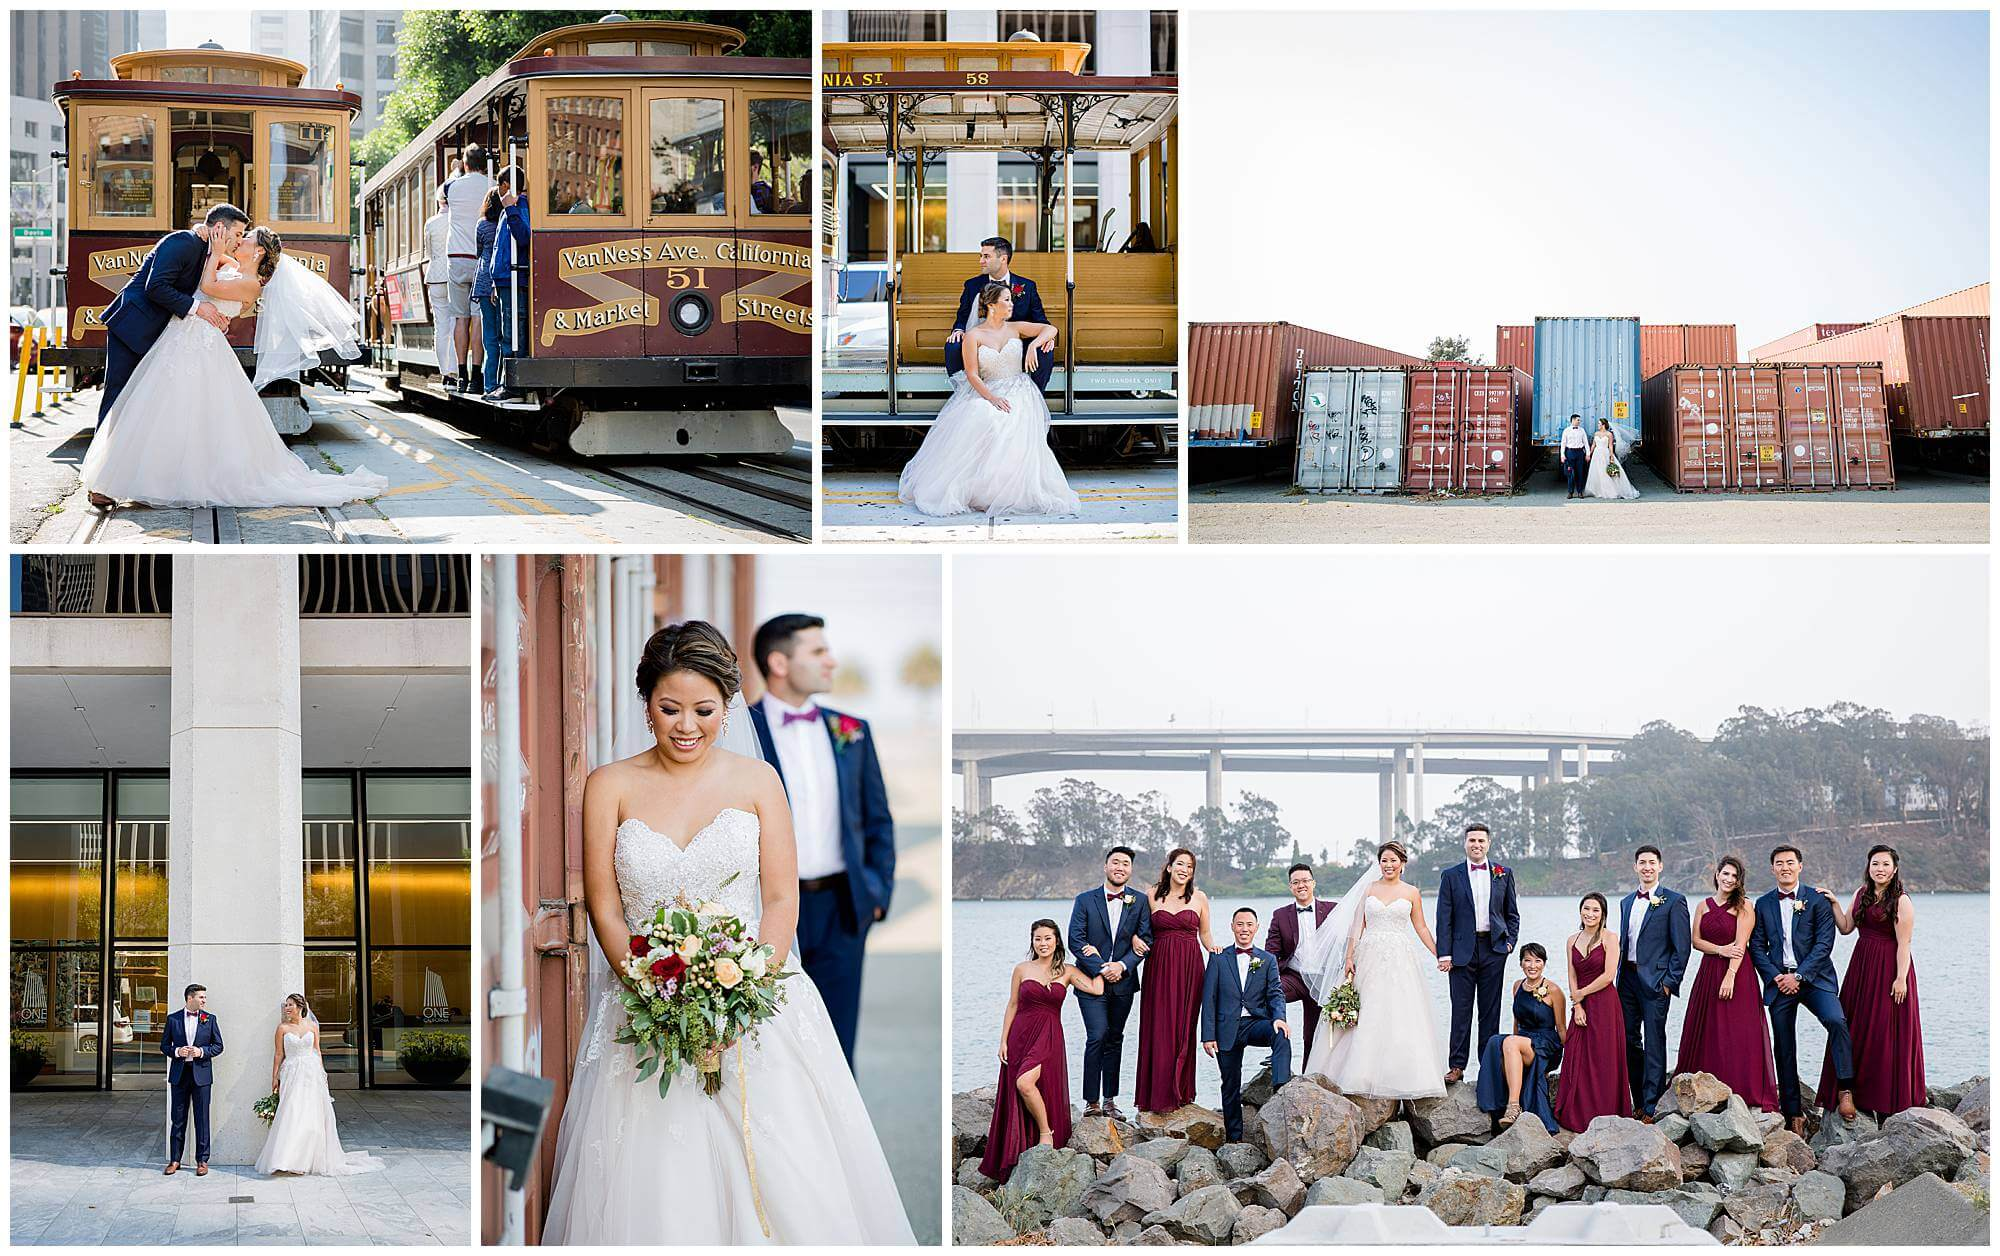 Photo collage from Annie and Leon's wedding at The Winery SF